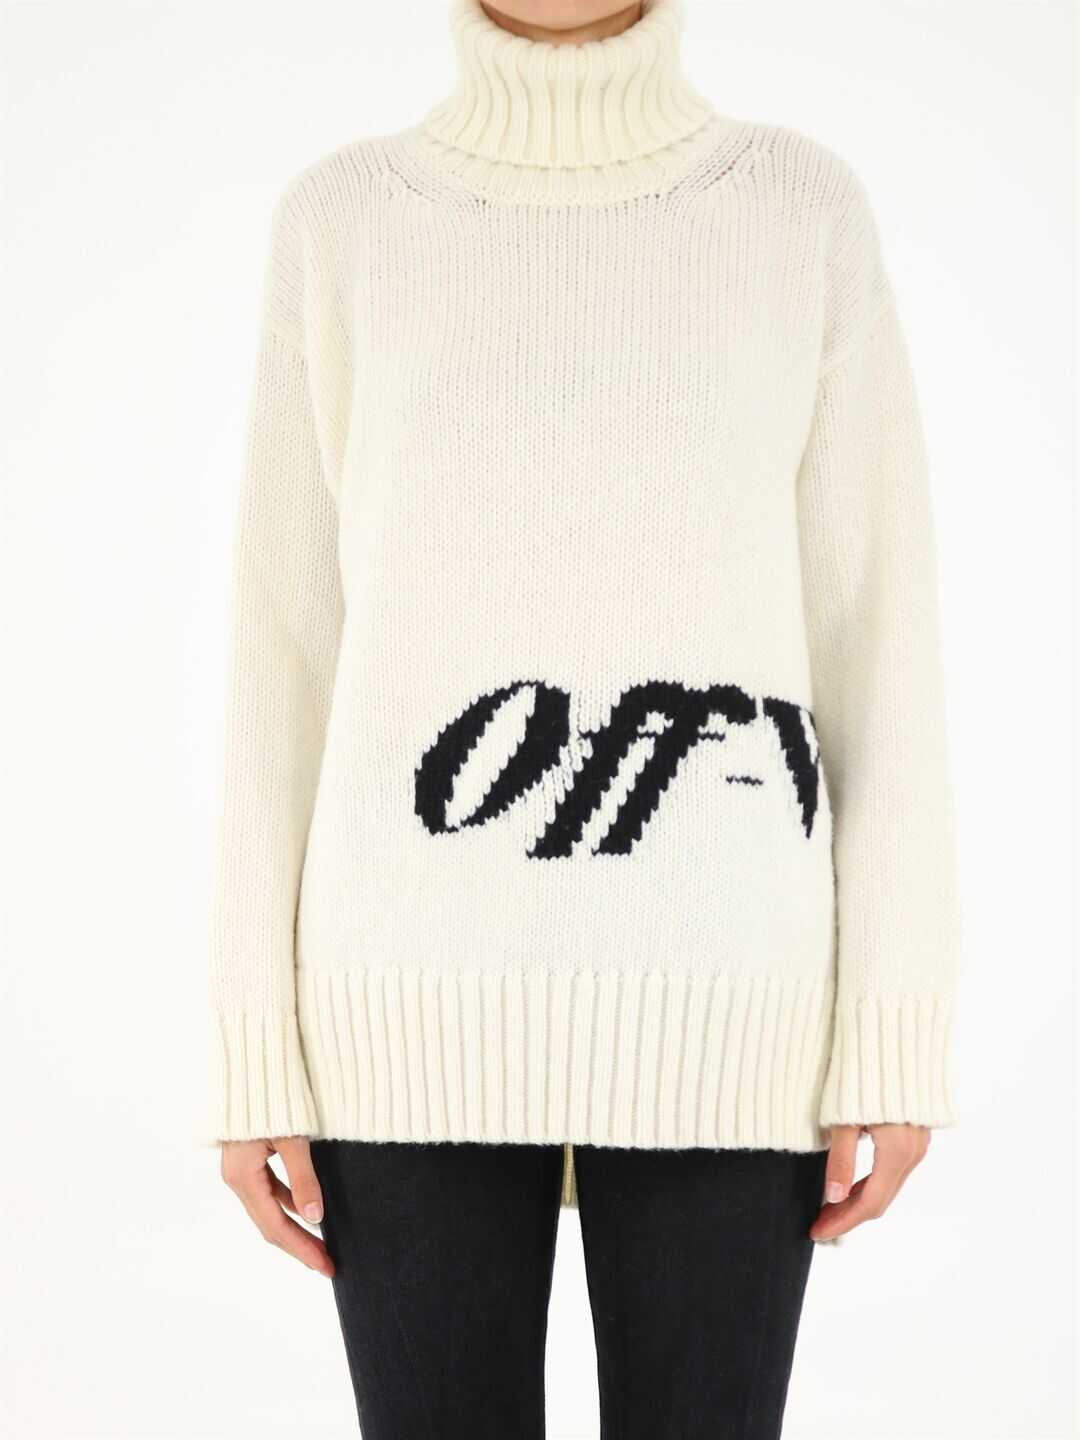 Off-White High Neck Sweater With Logo OWHF019F21KNI001 White image0